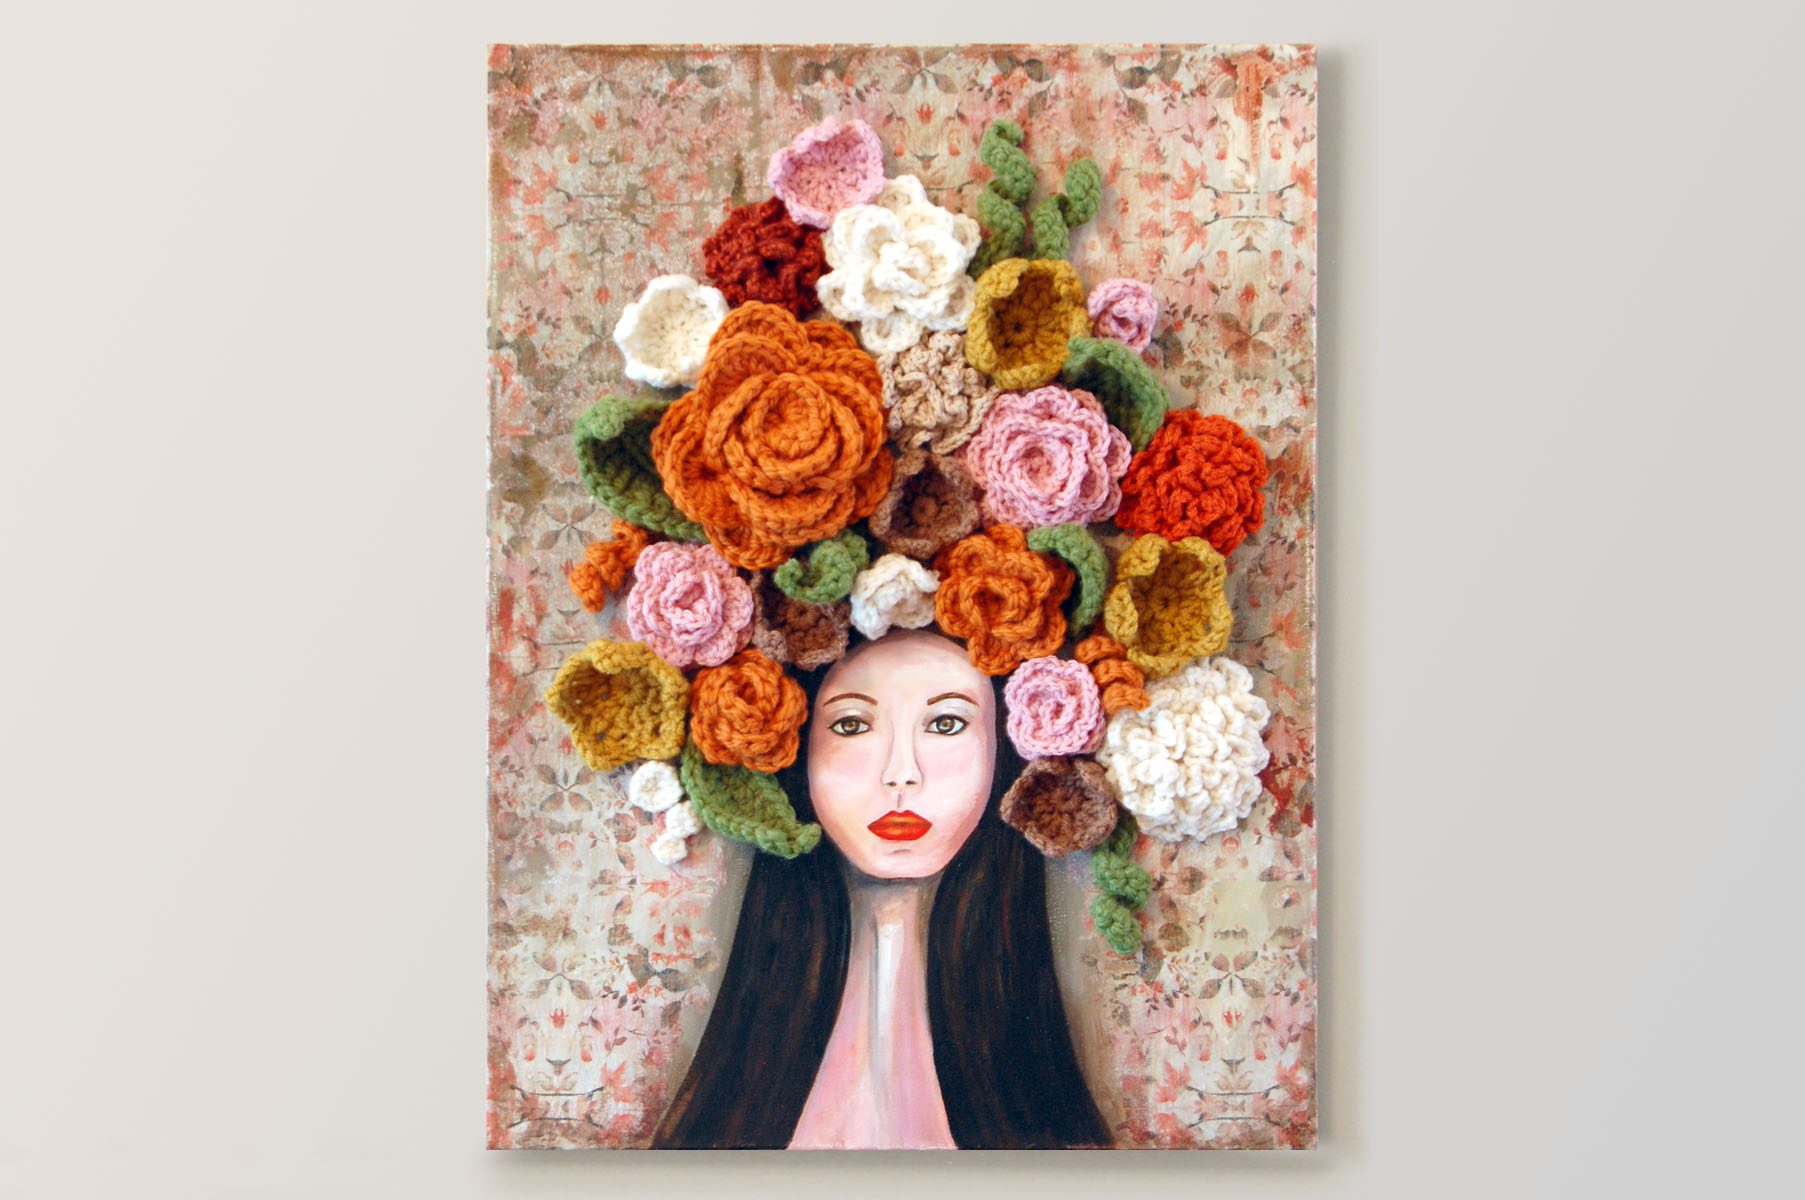 1448-flowers-in-her-hair-pic-3b Painting Frames Home Design on mirror painting designs, painting corners designs, painting clock designs, abstract painting designs, painting brick designs, painting wall designs, painting bowl designs, painting table designs, abstract wall designs, canvas wall designs, painting interior designs, modern contemporary designs, painting wallpaper designs, painting color designs, painting door designs, painting wood designs, painting floor designs, painting box designs, oil painting designs, canvas painting designs,